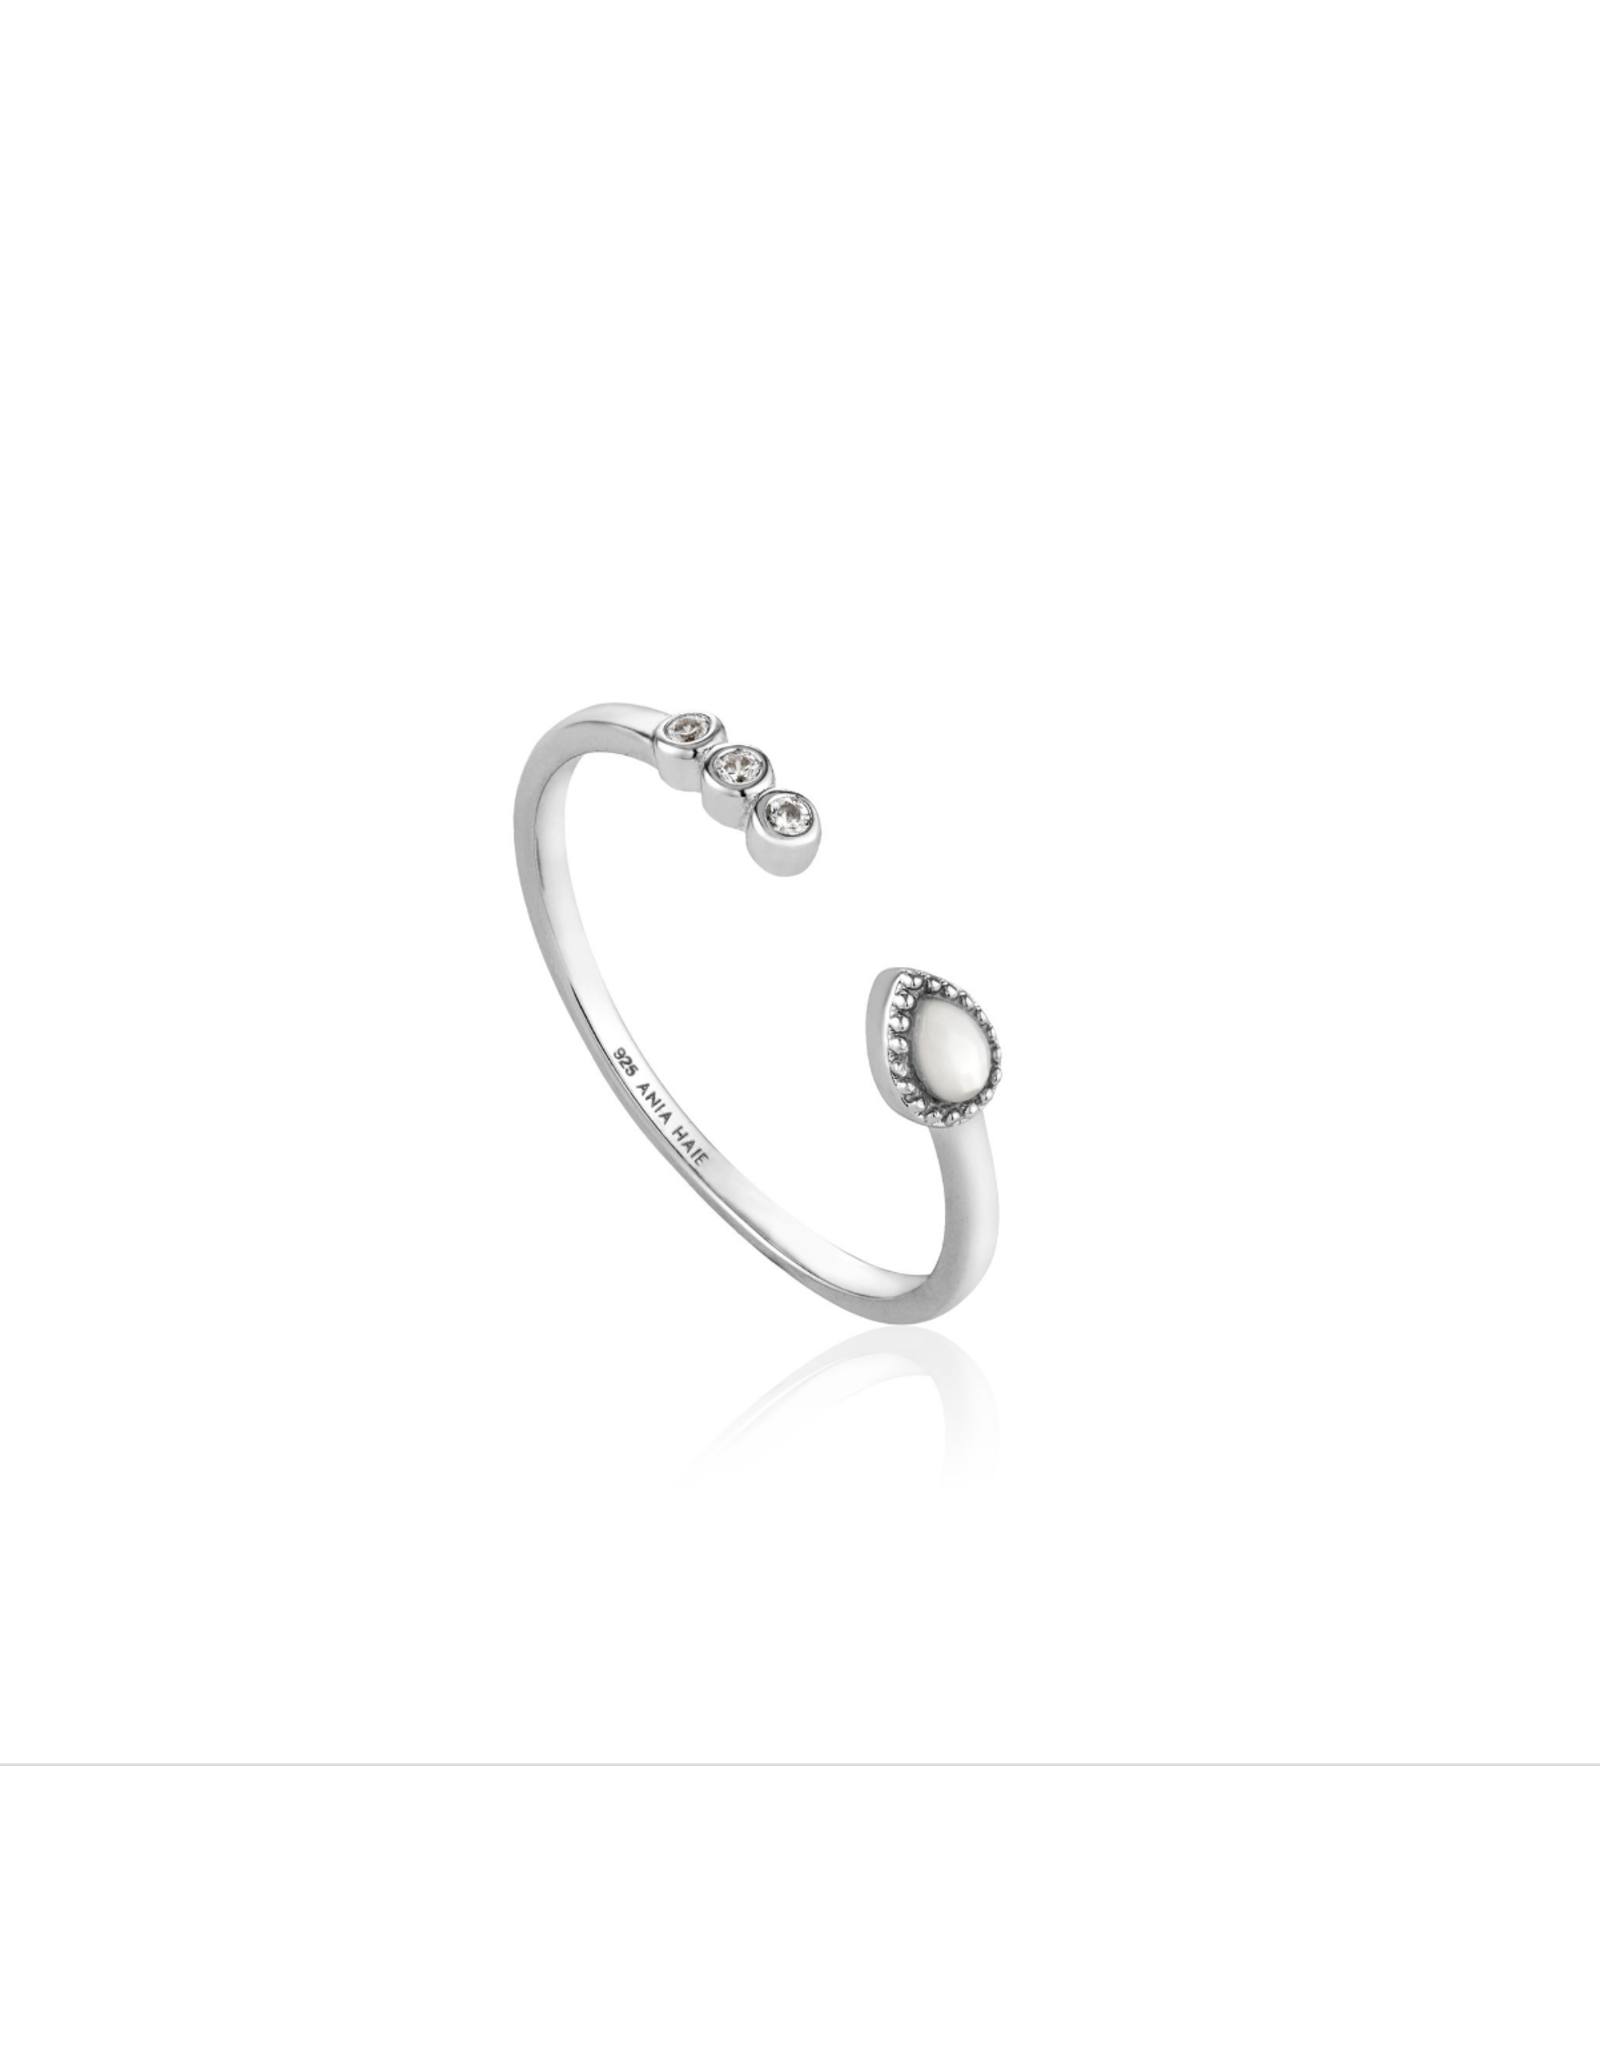 Ania Haie Dream Adjustable Ring, silver